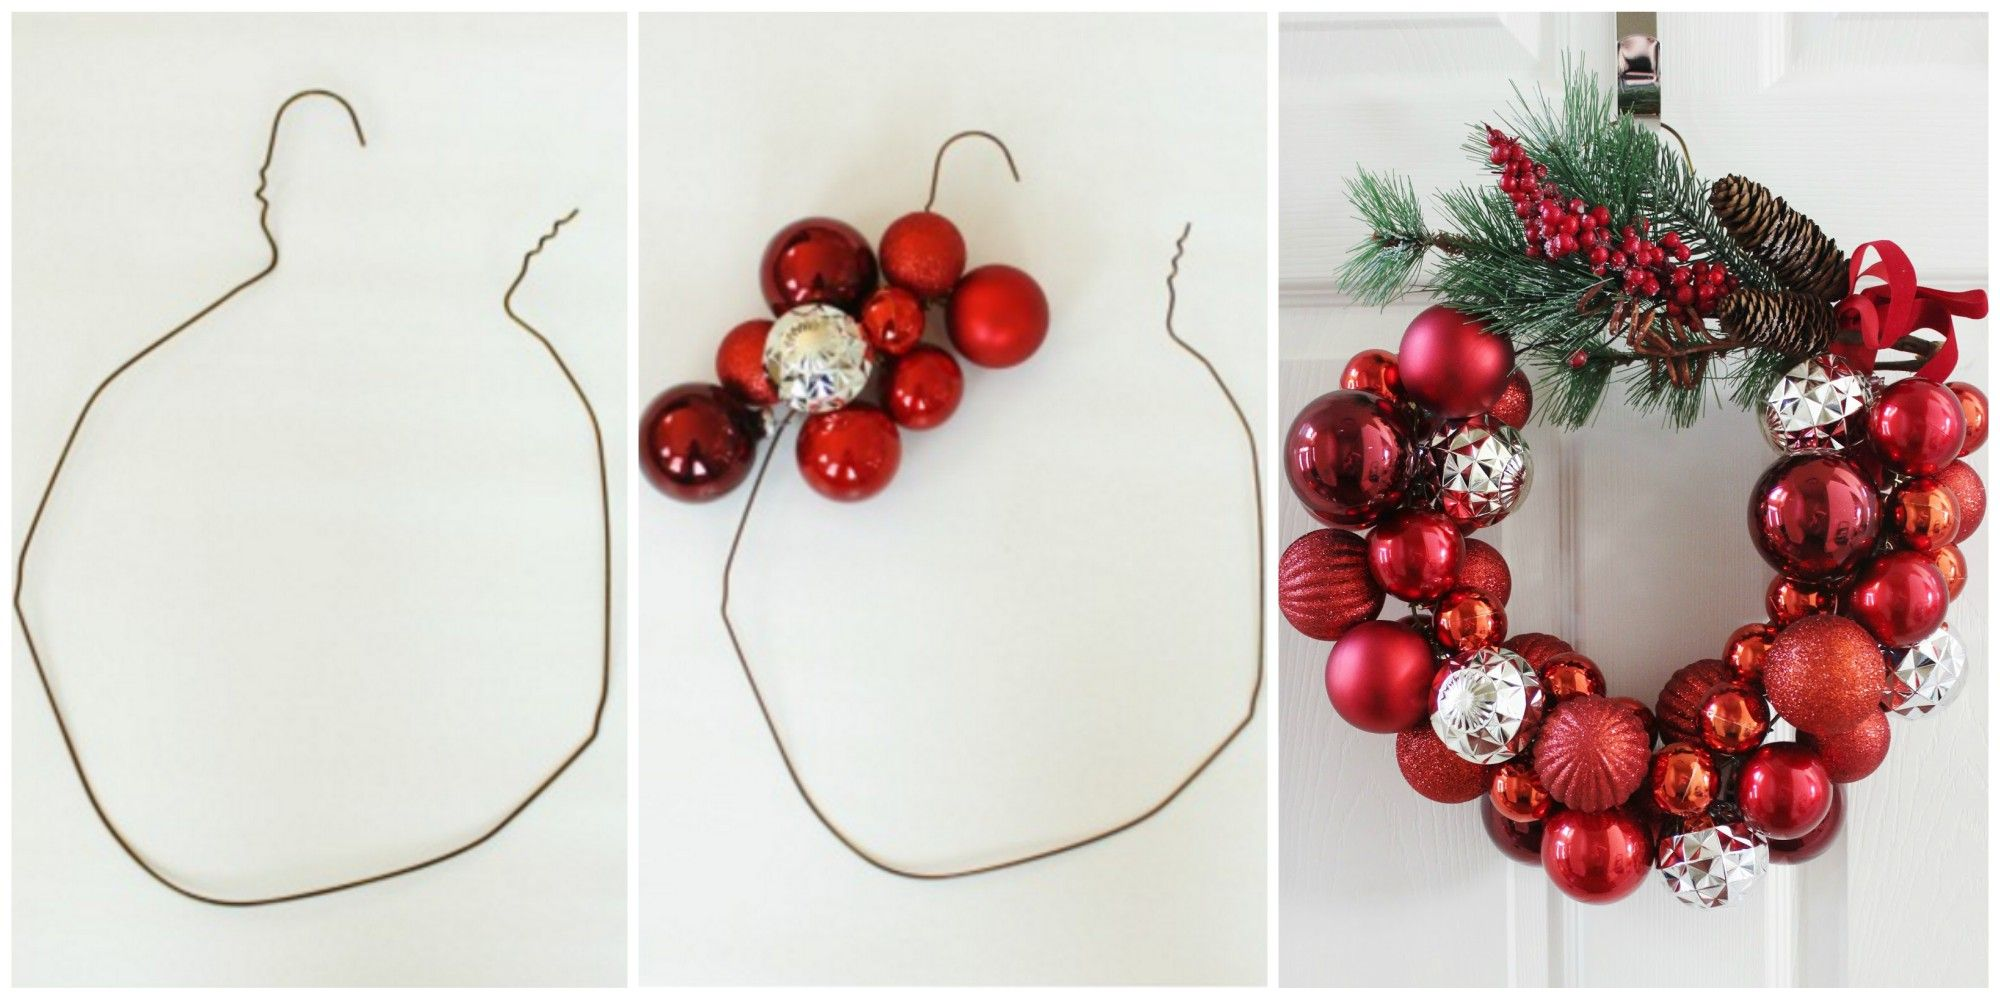 How to Make a Christmas Wreath With a Wire Hanger - DIY Holiday Ideas